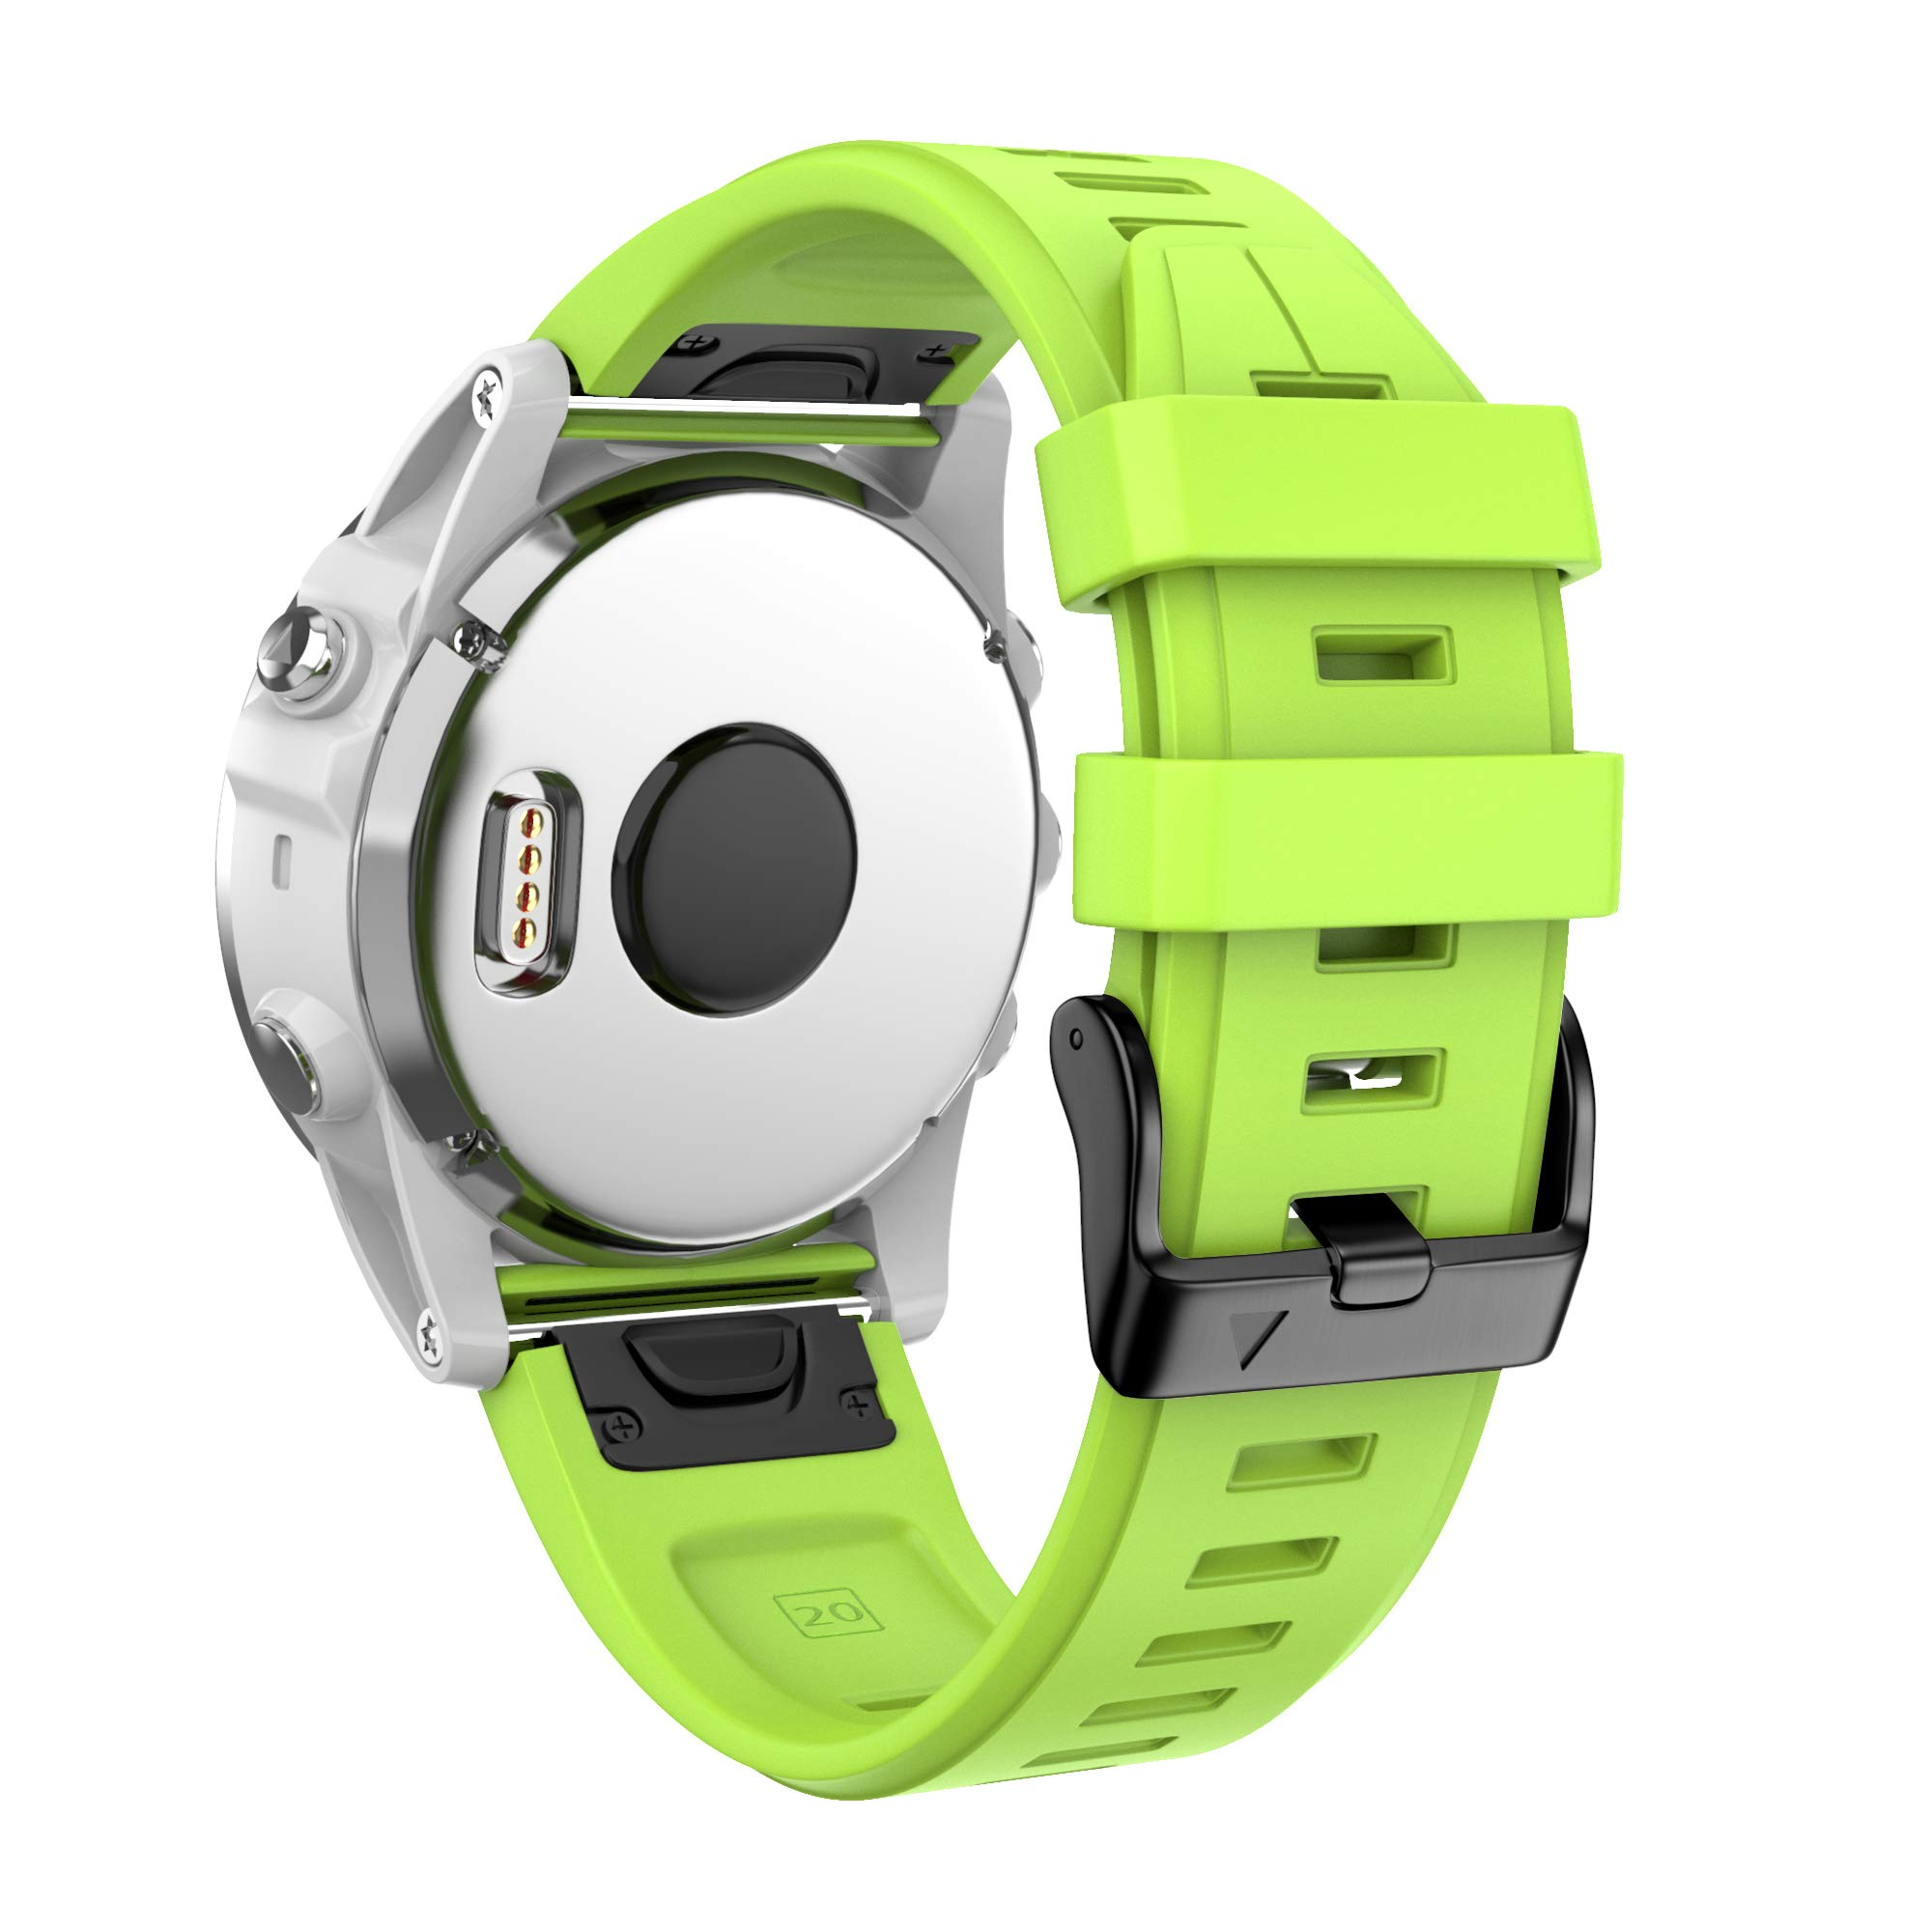 ANCOOL Compatible with Fenix 5S Plus Bands 20mm Width Easy Fit Soft Silicone Watch Bands Replacement for Fenix 6S/Fenix 6S Pro/Fenix 5S Smartwatches, Green by ANCOOL